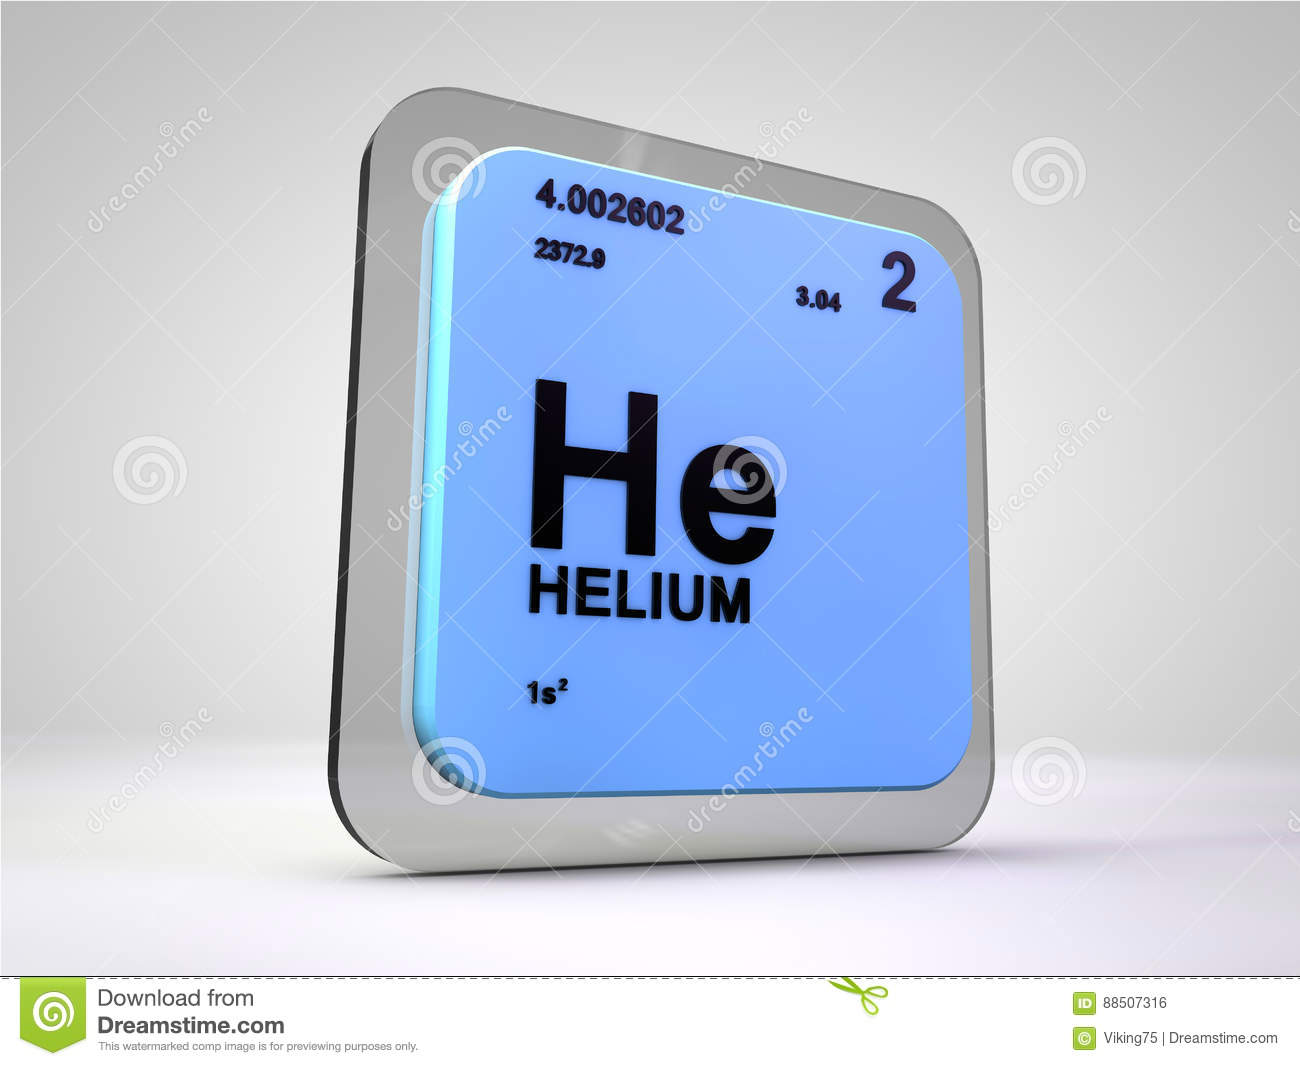 Helium he chemical element periodic table stock illustration helium he chemical element periodic table buycottarizona